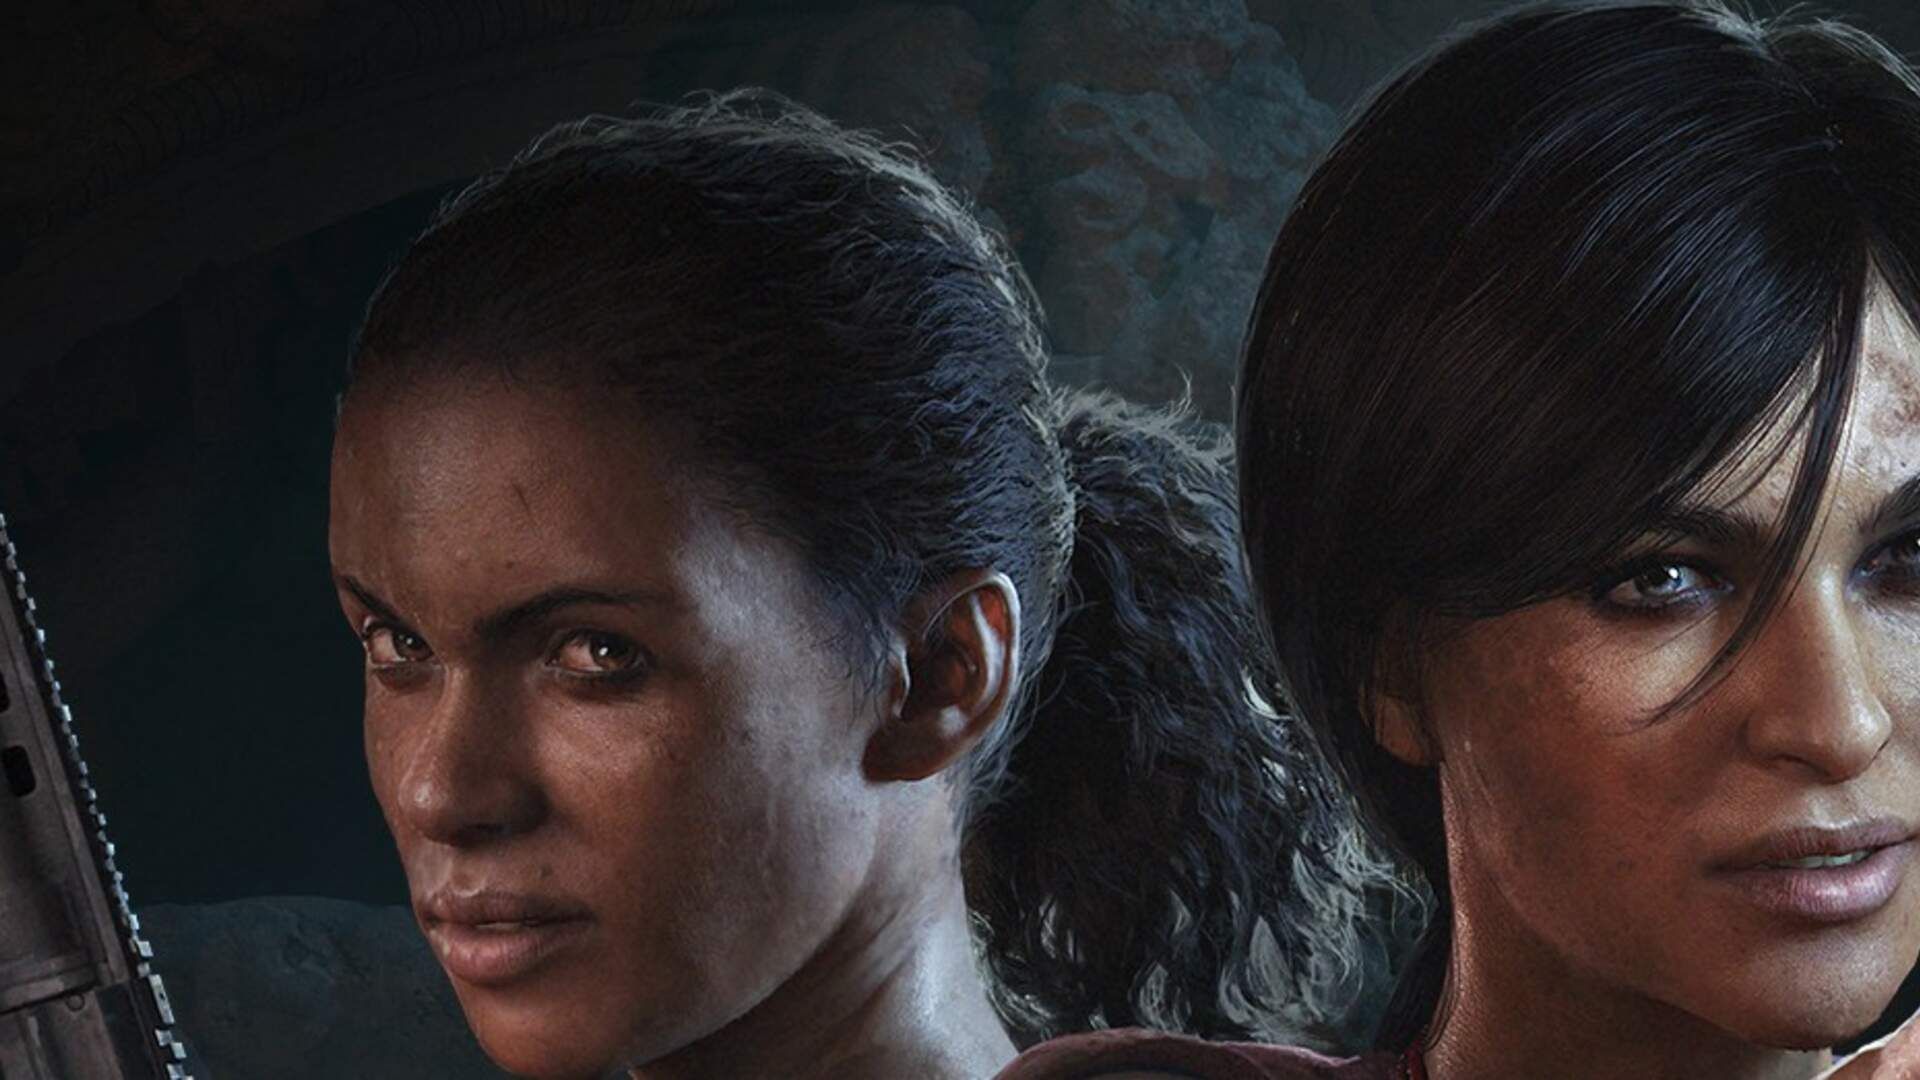 Uncharted: The Lost Legacy Release Date, New Gameplay, Trailer Analysis, Price, Characters, Naughty Dog Interview - Everything We Know